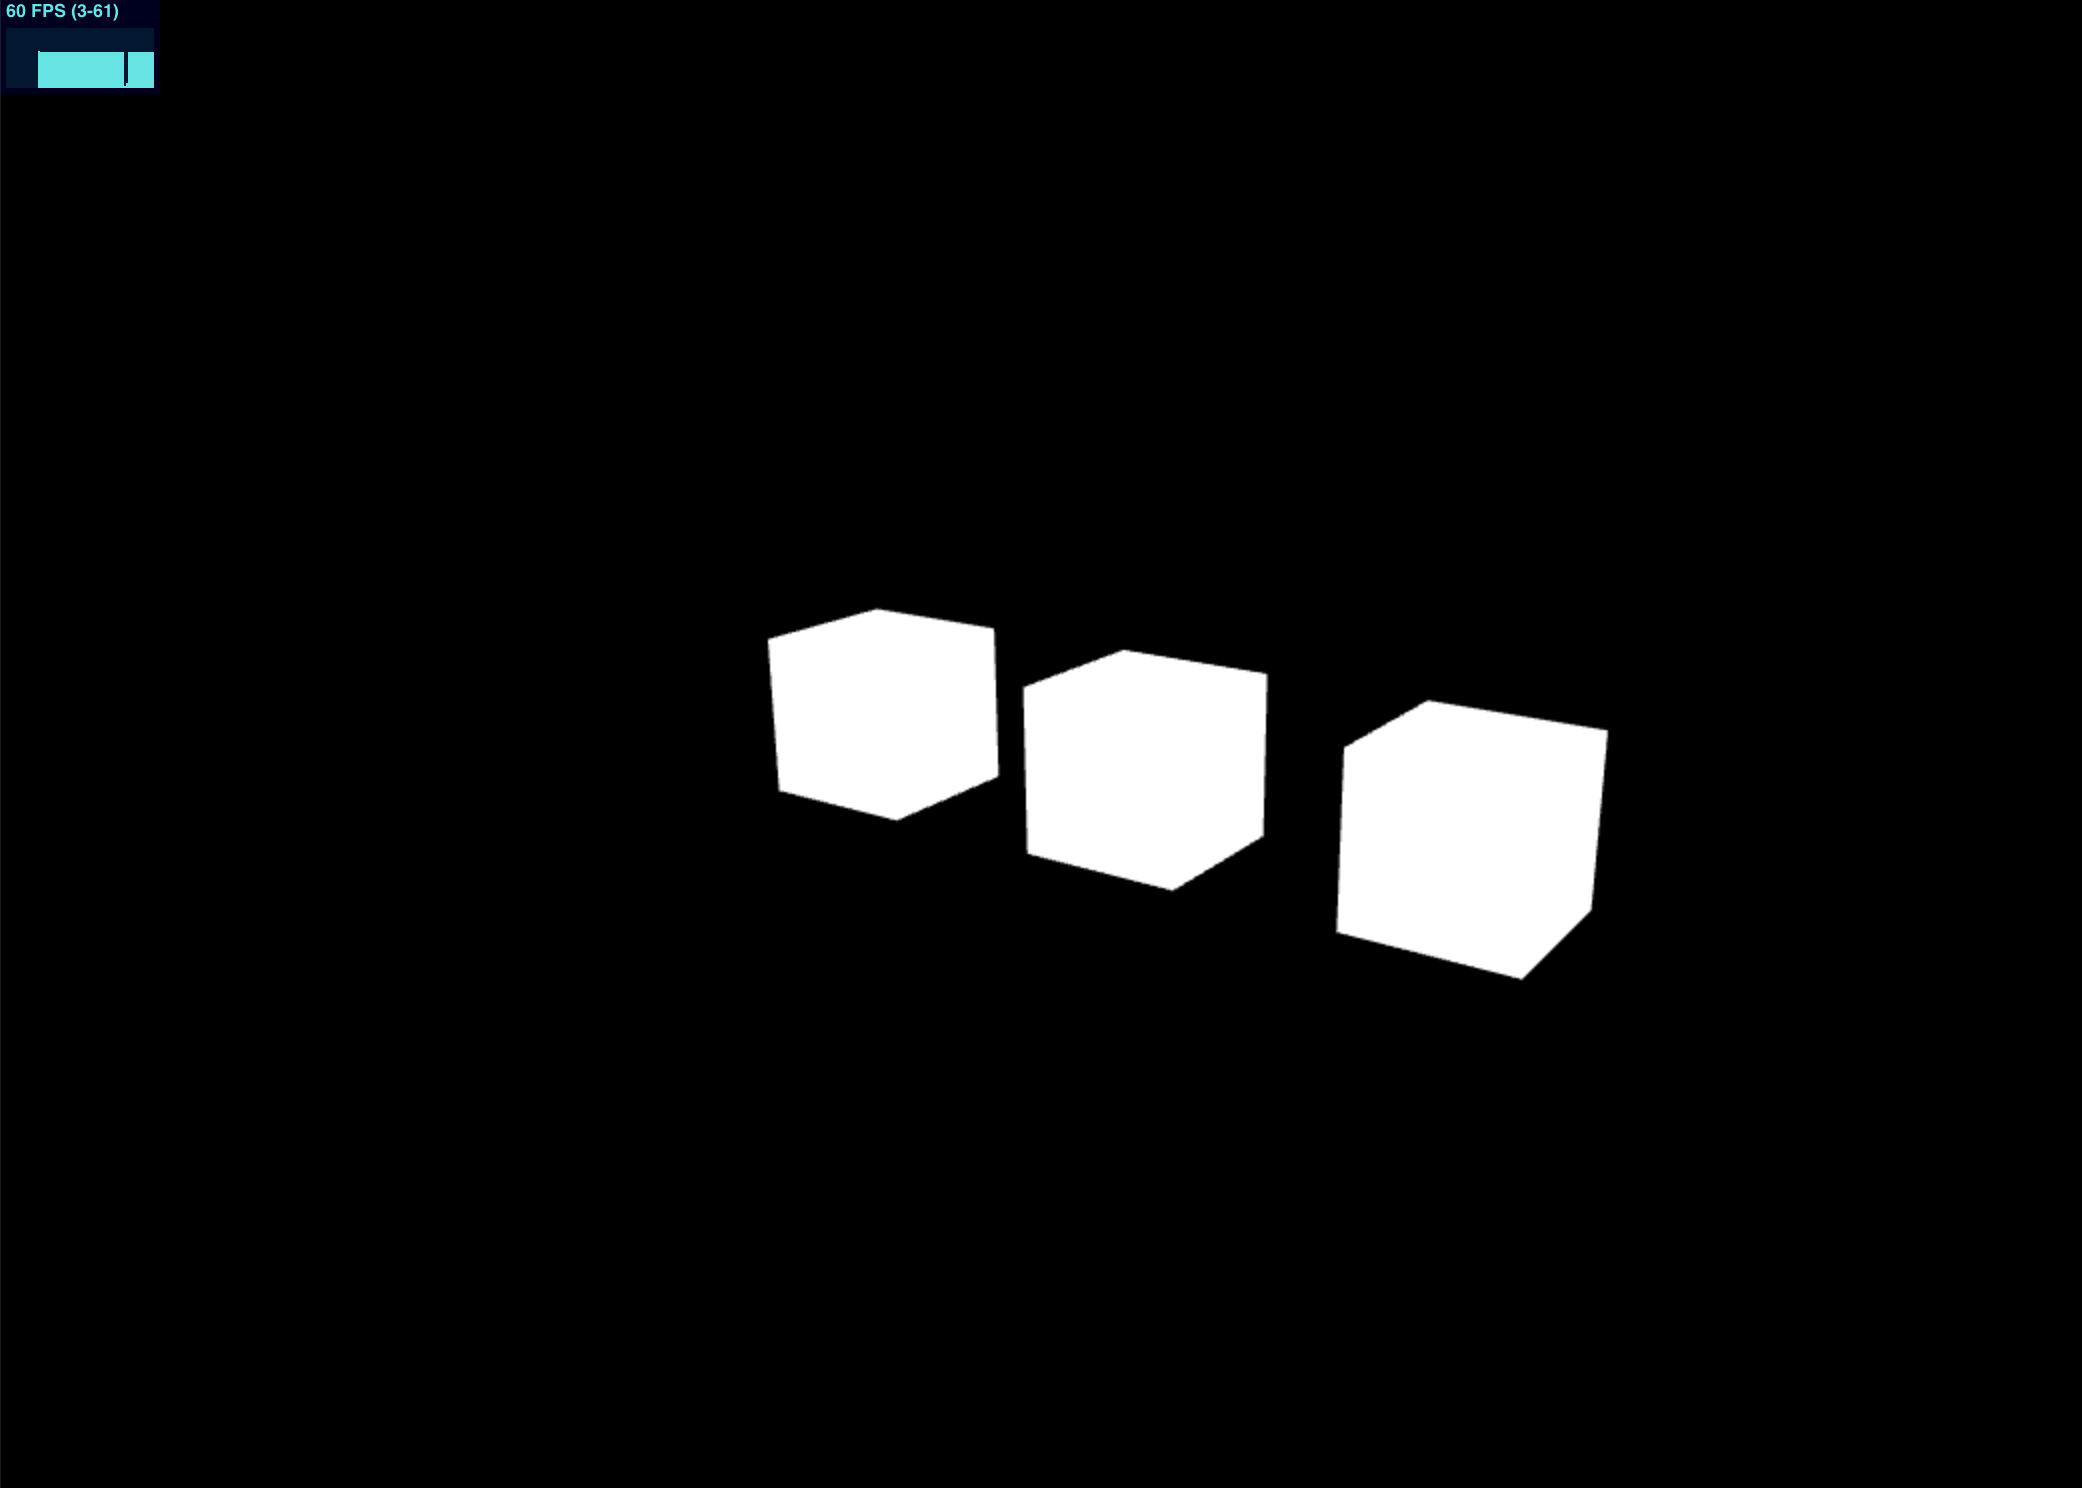 Screen shot of three white cubes in a black background with a frames-per-second graph in the top left.